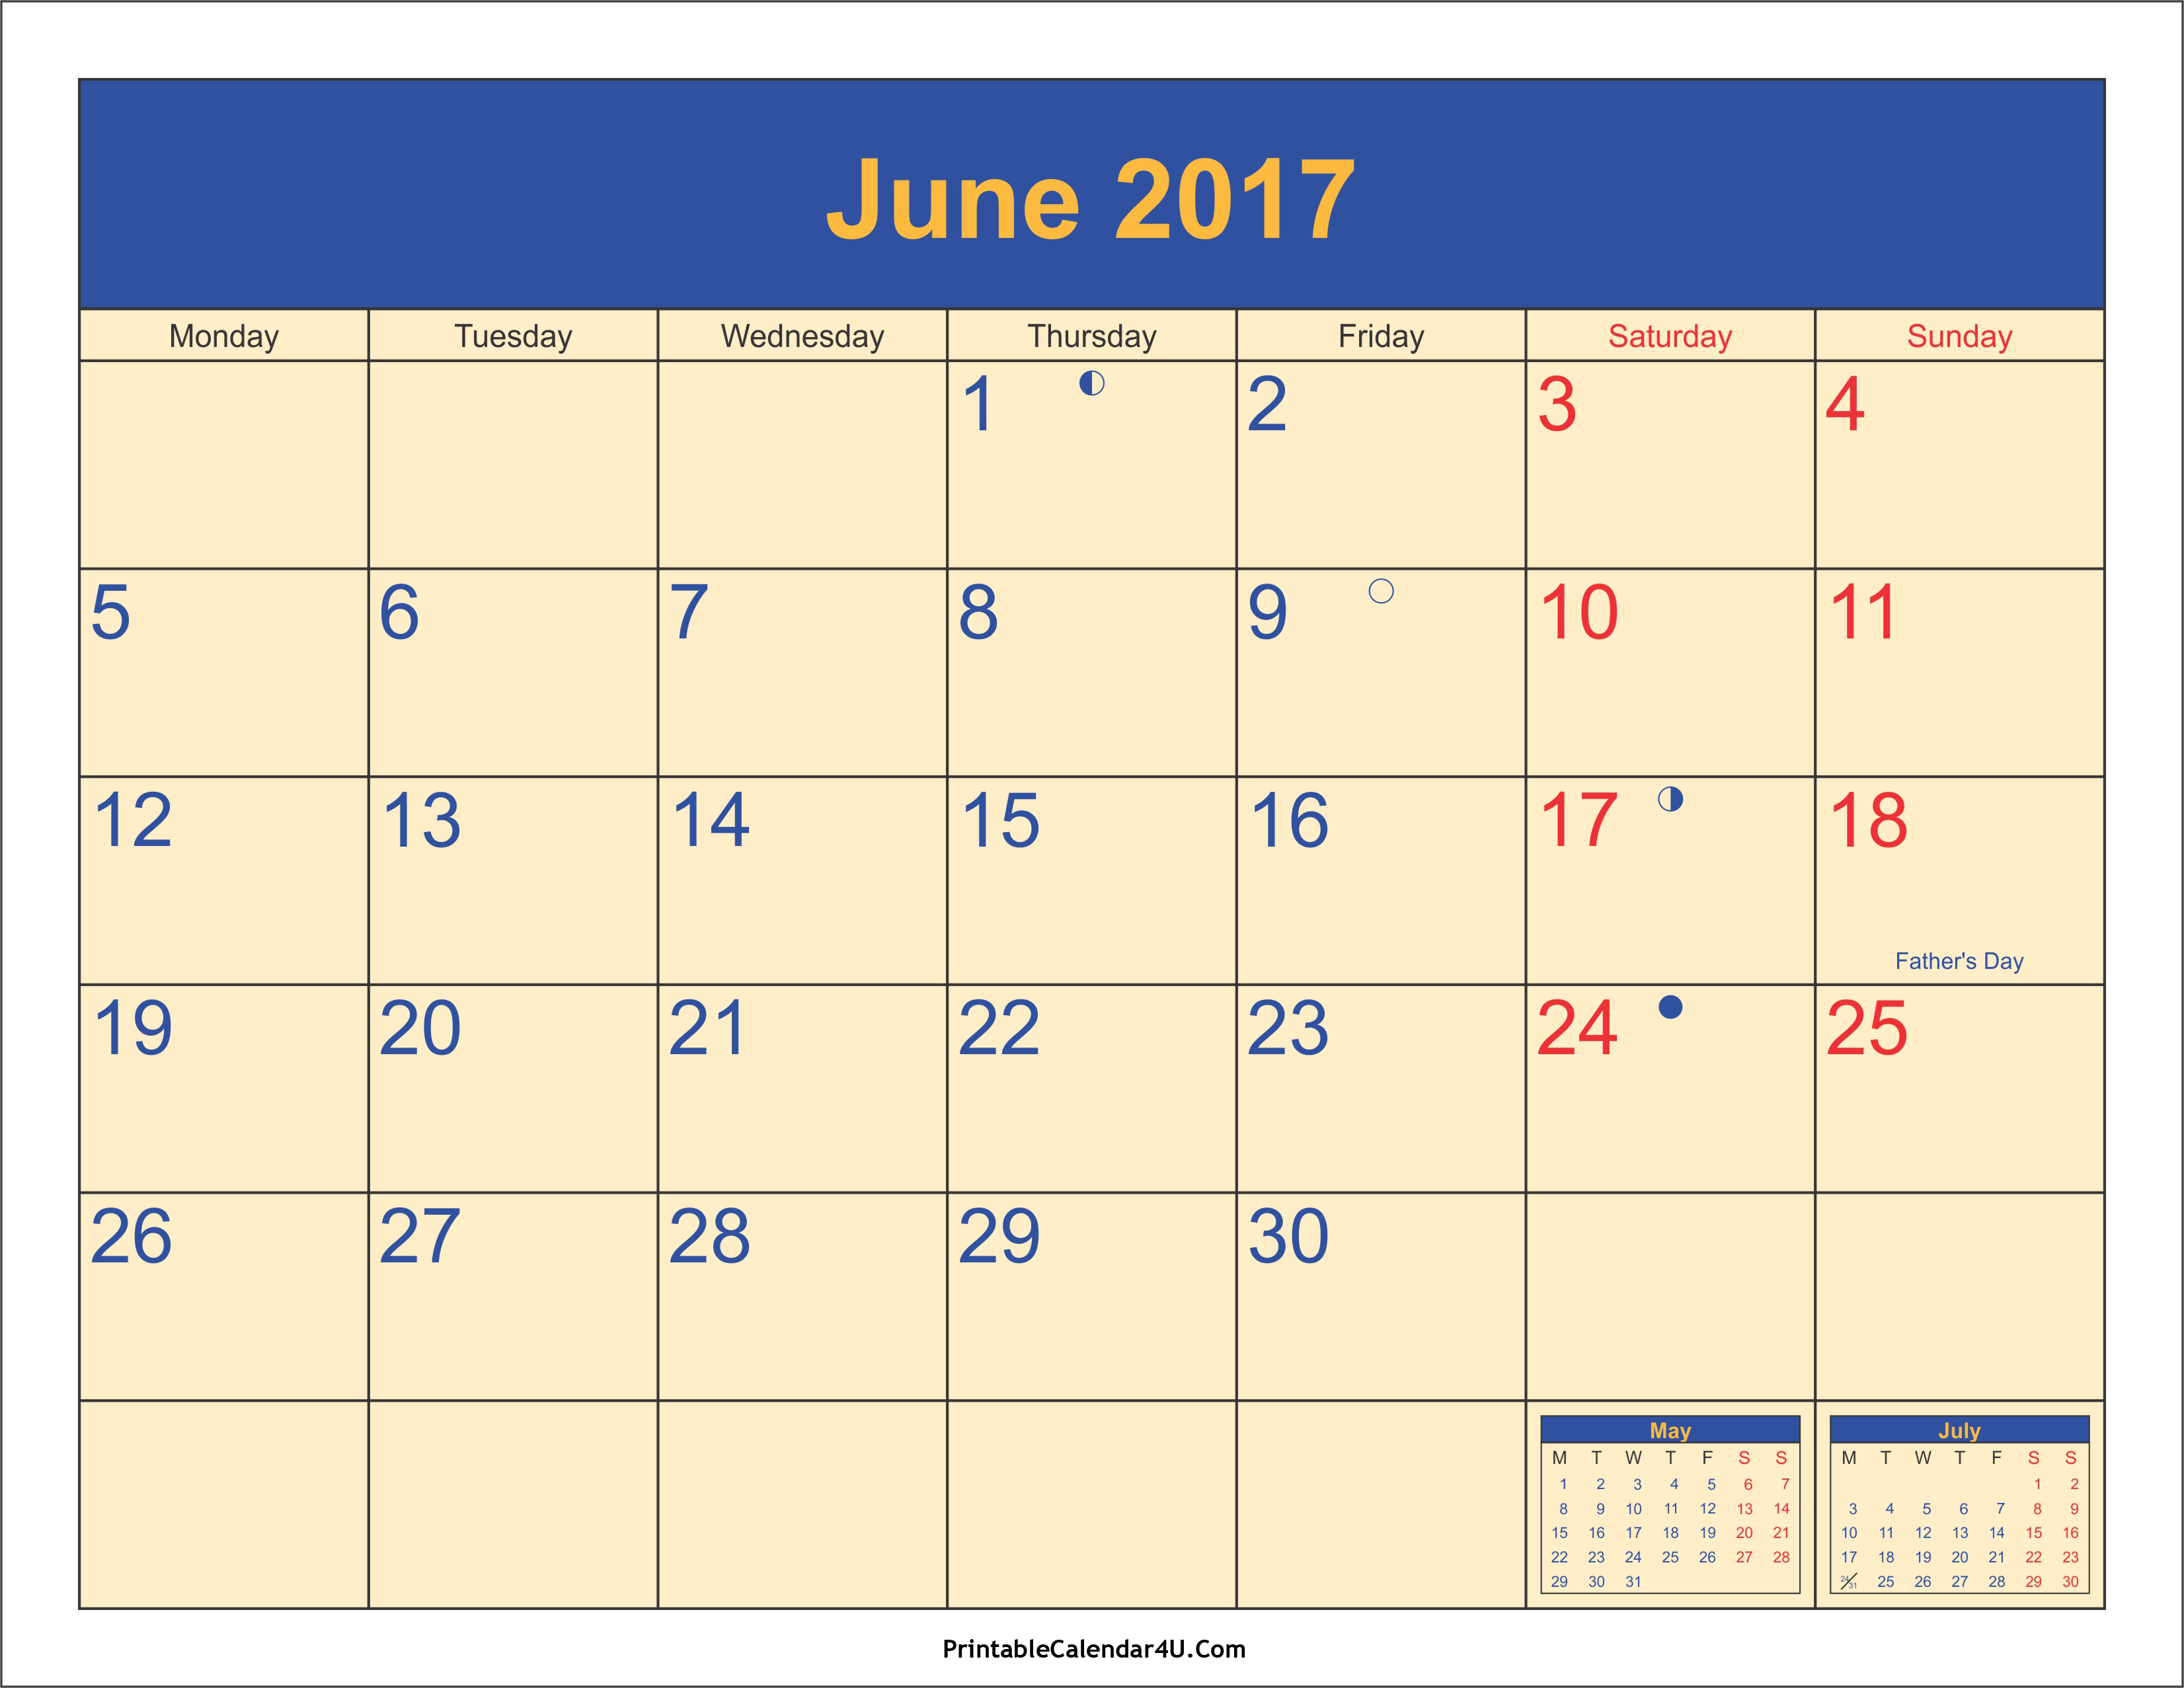 June 2017 Calendar Printable with Holidays PDF and